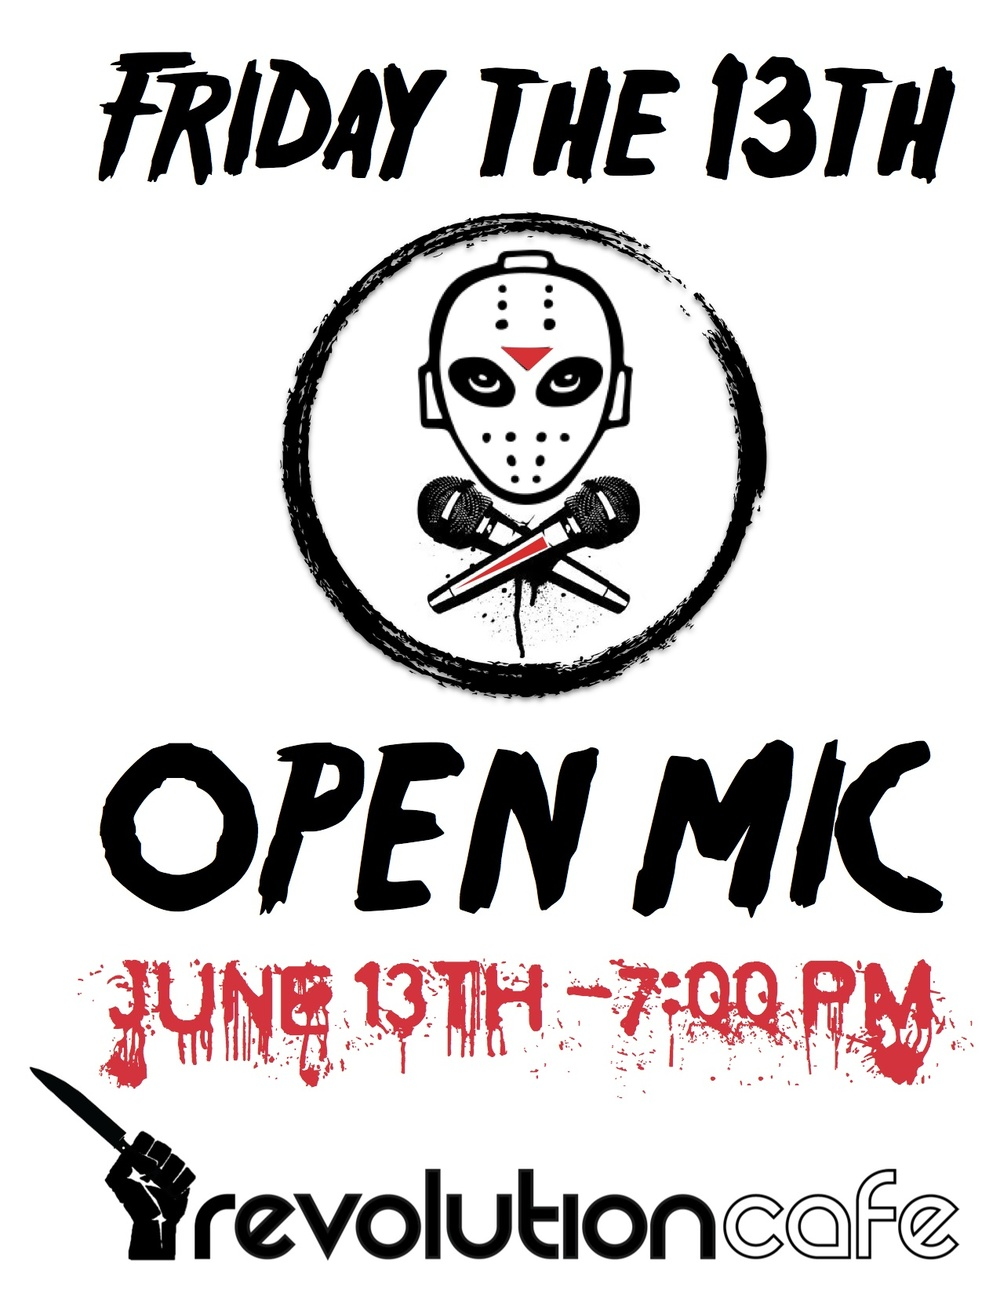 open mic 7 - friday the 13th.jpg